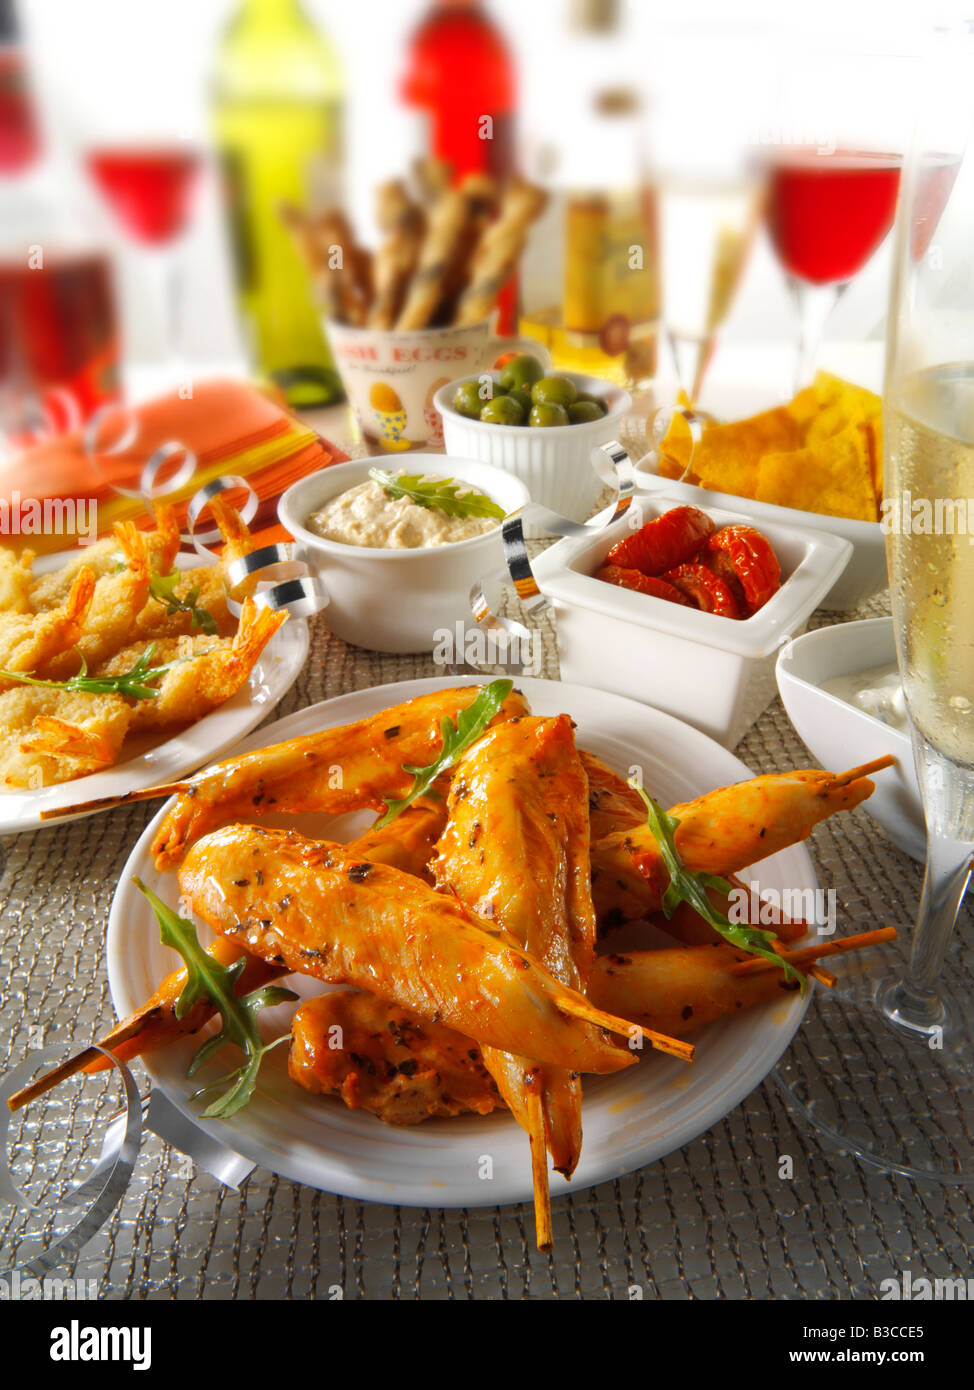 party food setting with marinated chicken skewers, sun dried tomatoes dip - Stock Image